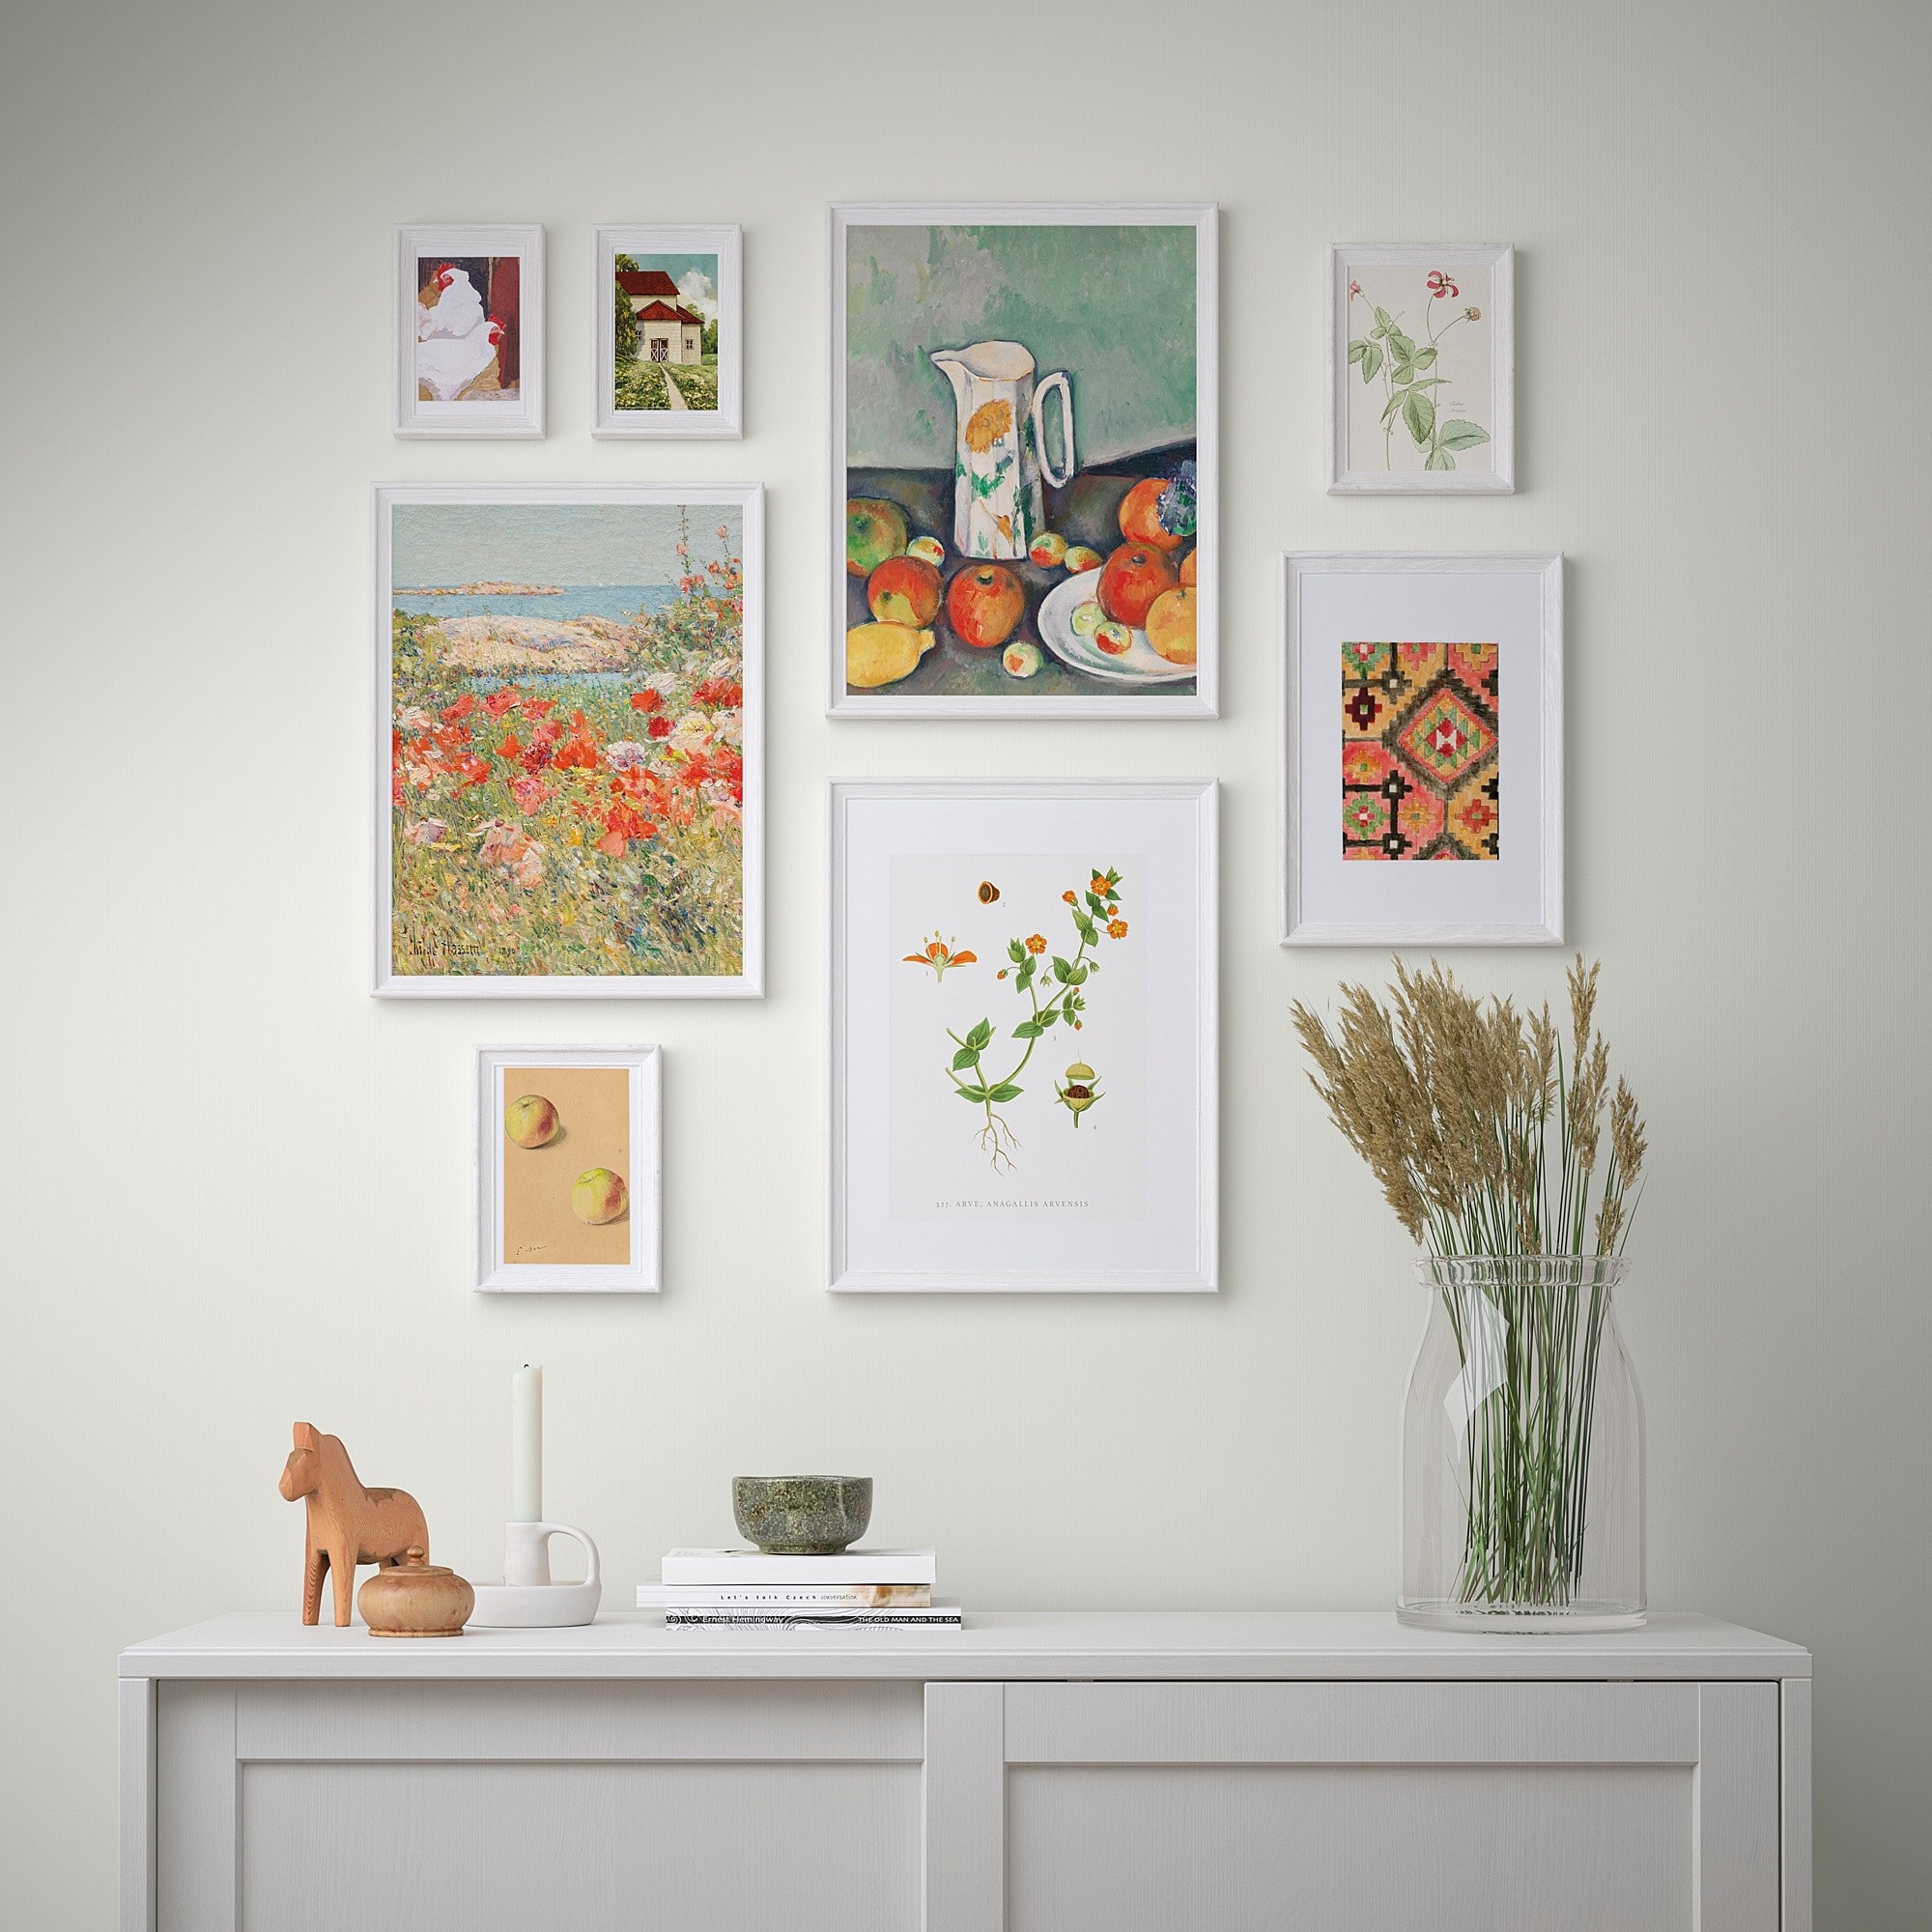 A gallery wall with eight framed posters